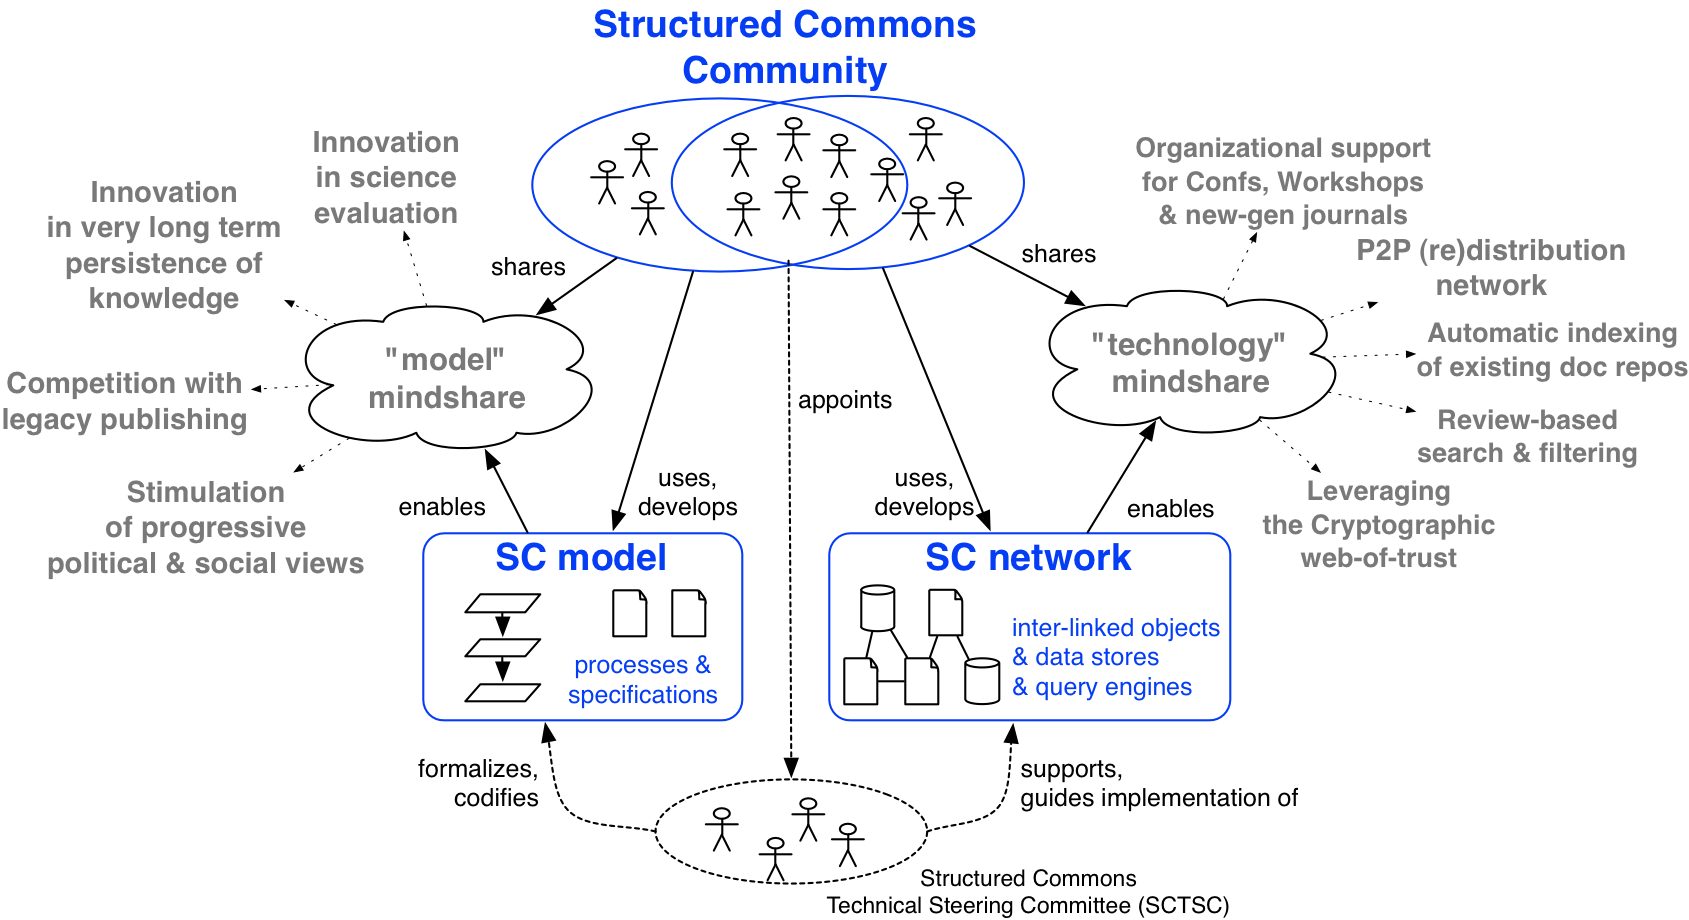 Diagram of the Structured Commons dual approach.